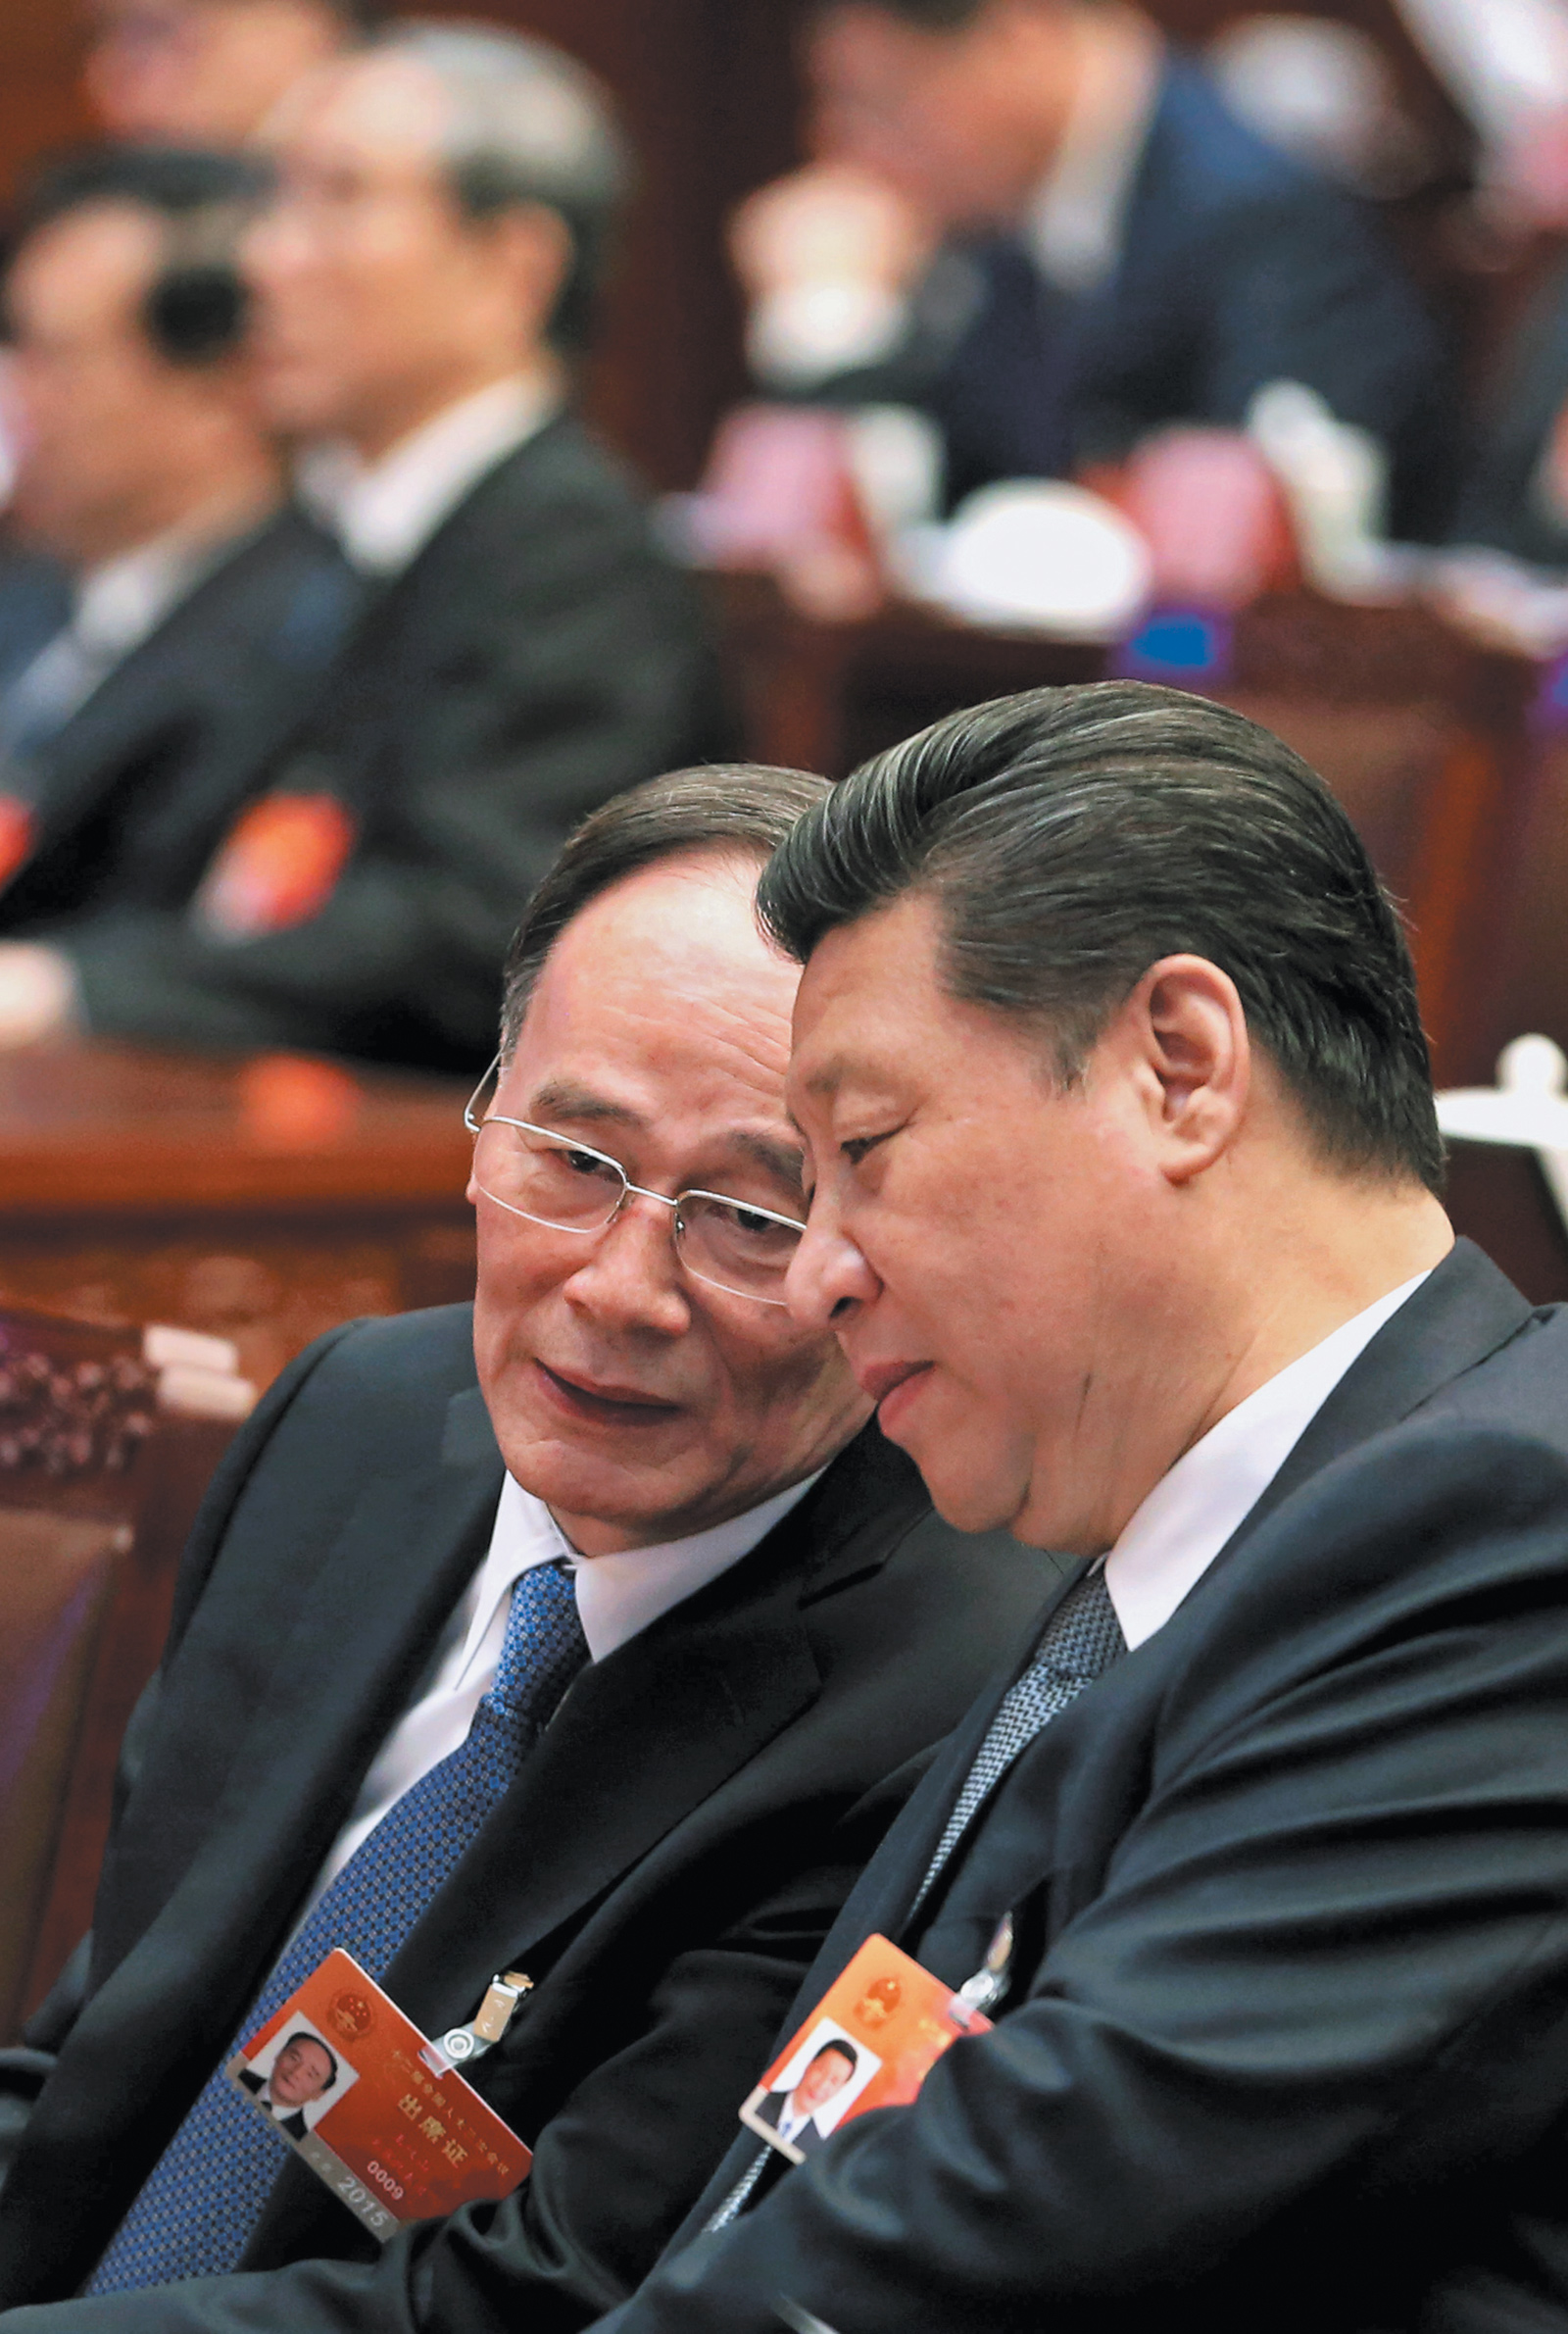 Chinese Communist Party General Secretary Xi Jinping, right, with Wang Qishan, who has been a major force in the recent crackdown as secretary of the Central Commission for Discipline Inspection (CCDI), at the National People's Congress, Beijing, March 2015